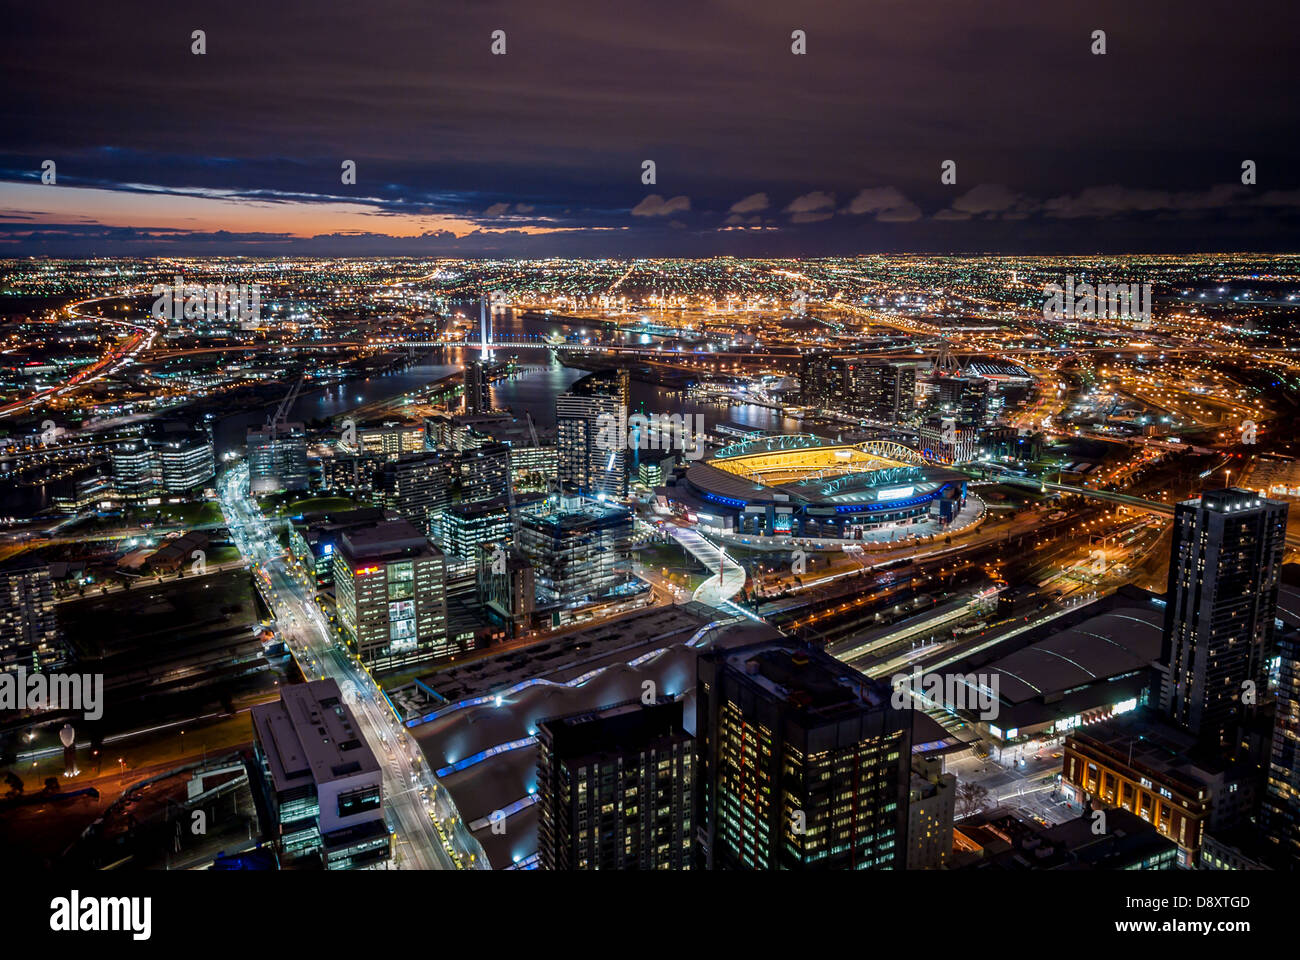 The lights of the city come on after sundown in Melbourne, Australia. - Stock Image